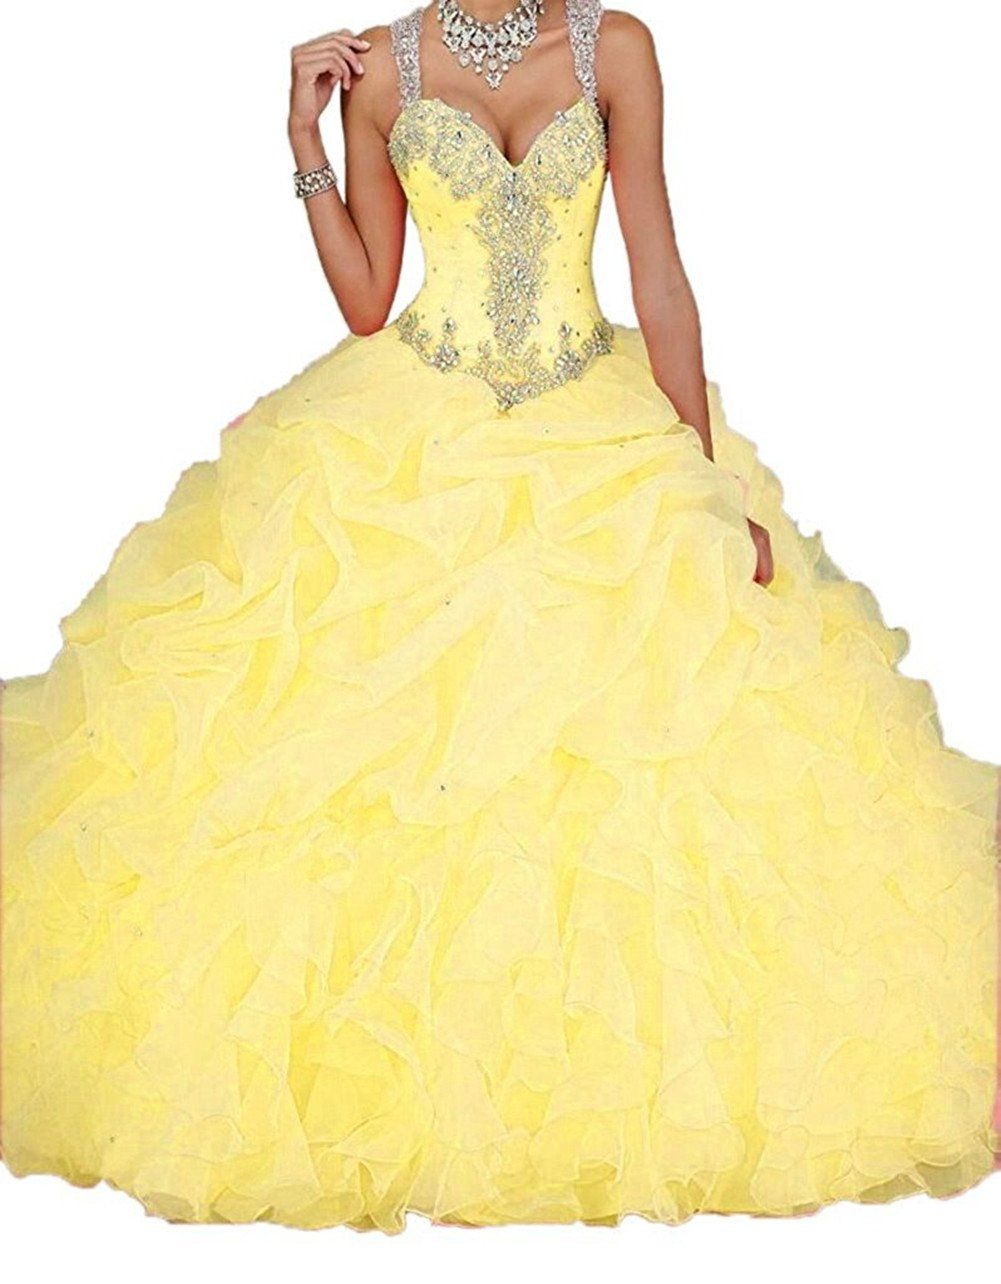 Cloverdresses crystal orange quinceanera dresses ball gown with